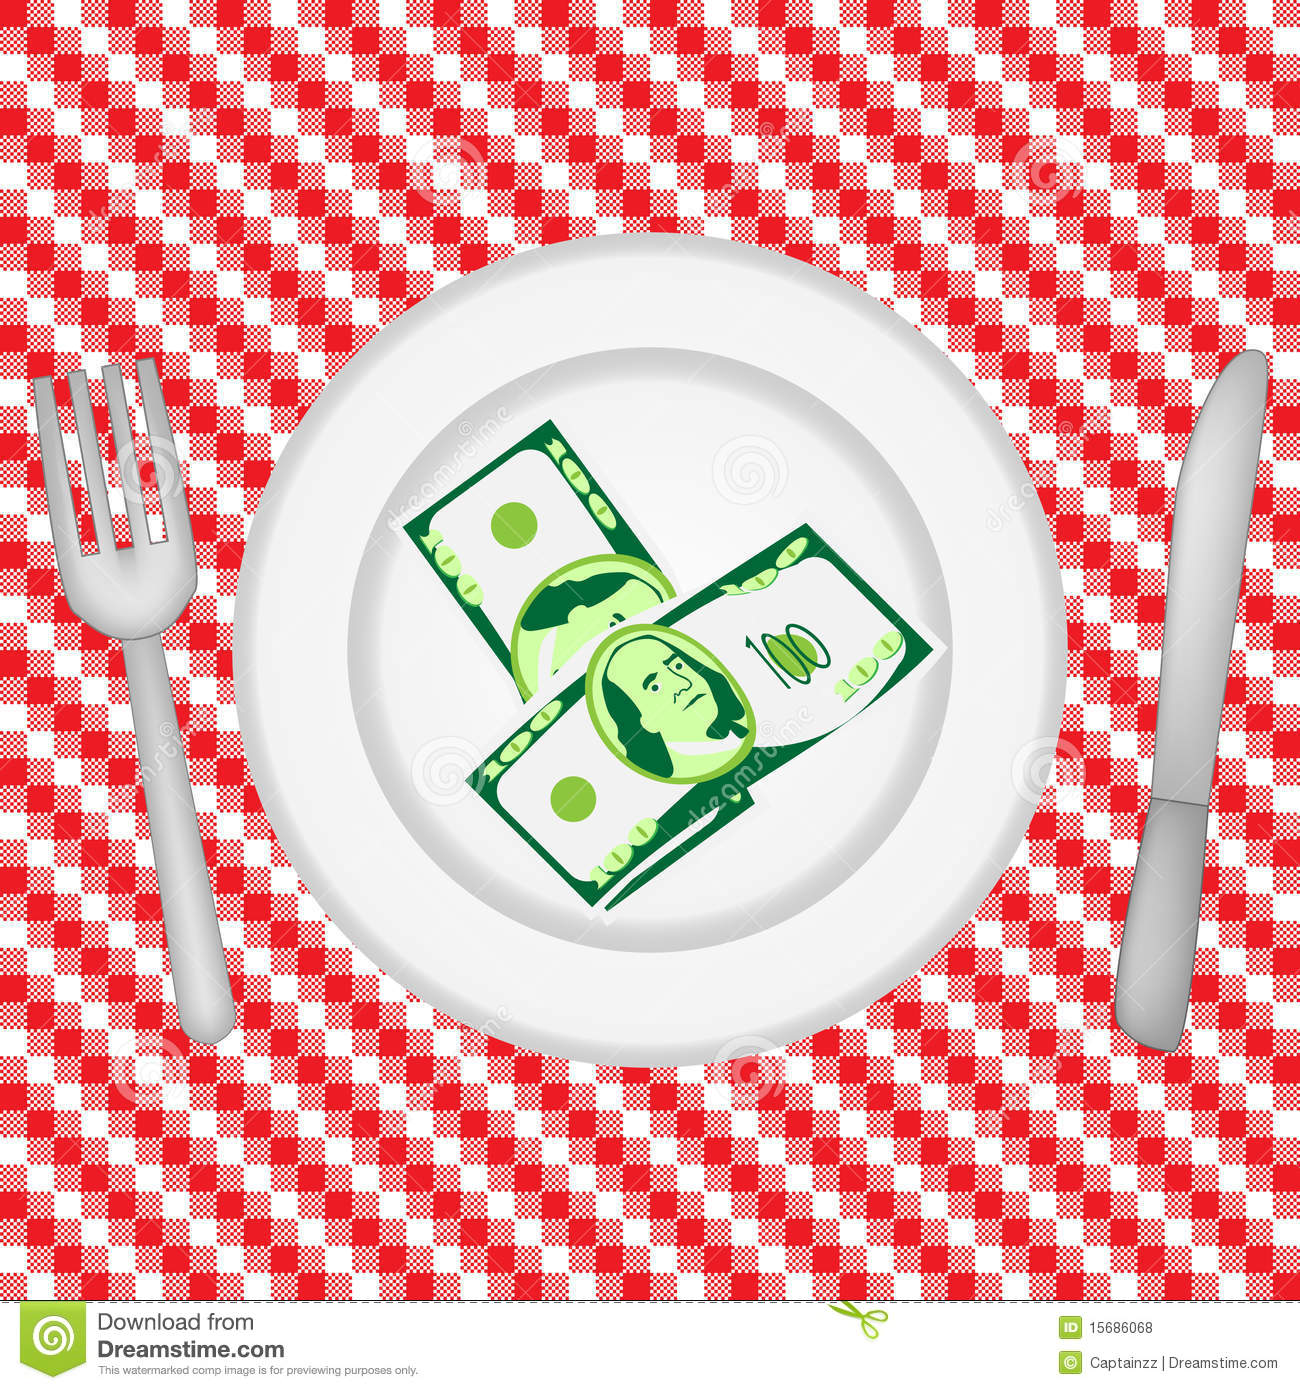 Expensive food clipart.